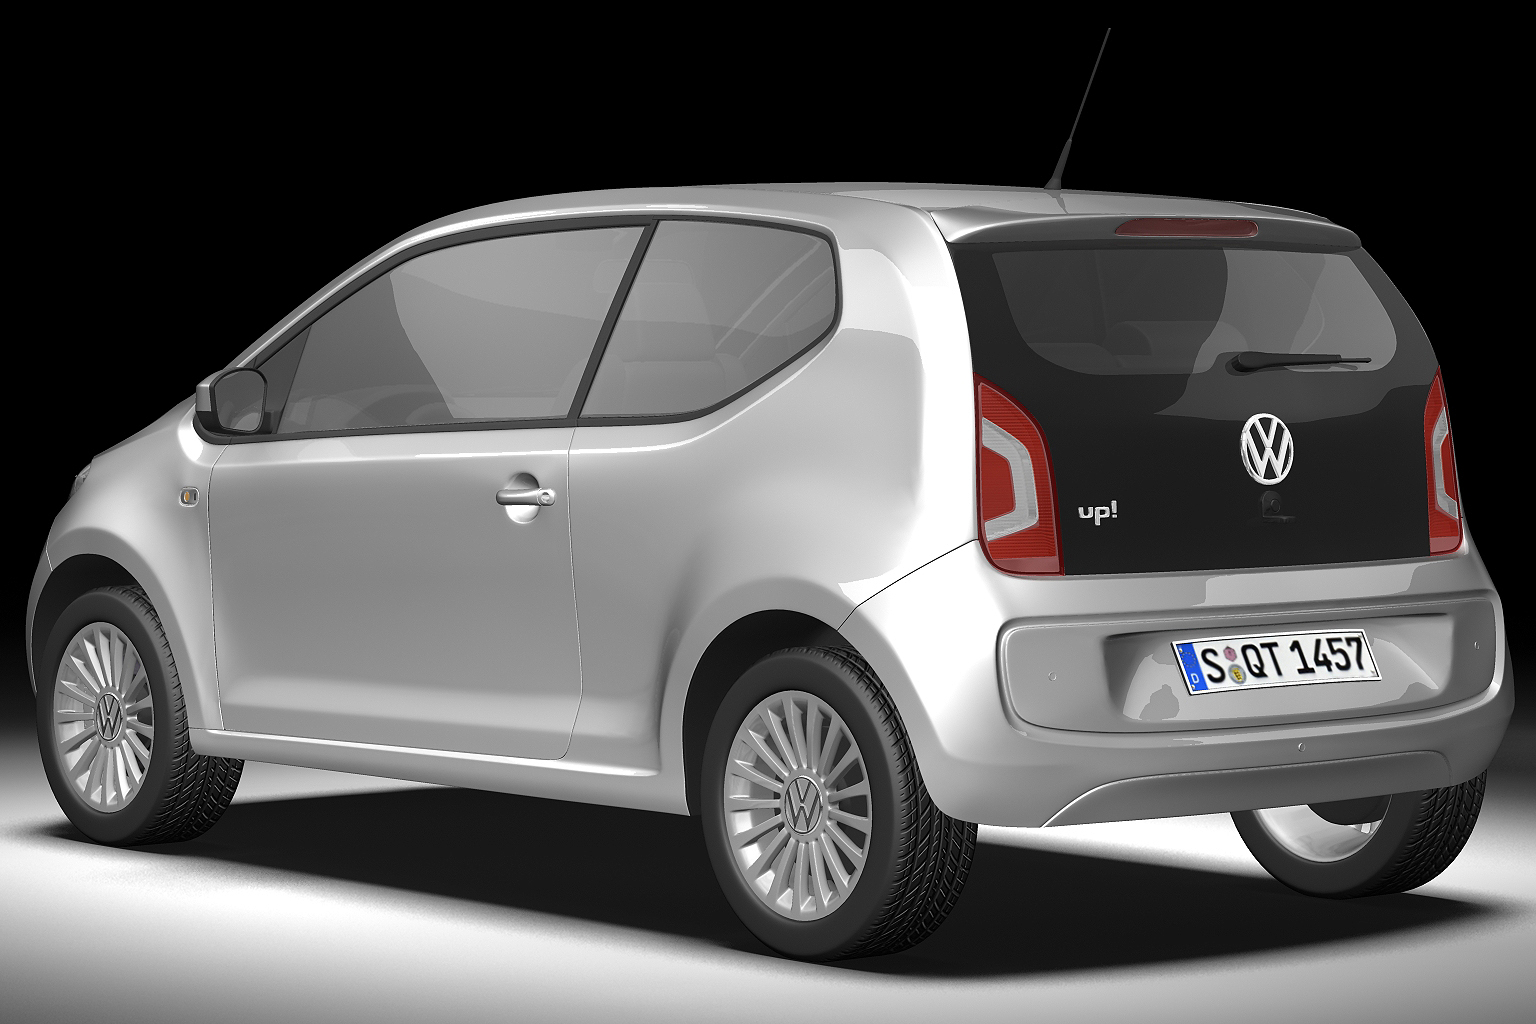 2013 volkswagen up 3d model 3ds max fbx c4d lwo hrc xsi obj 136206